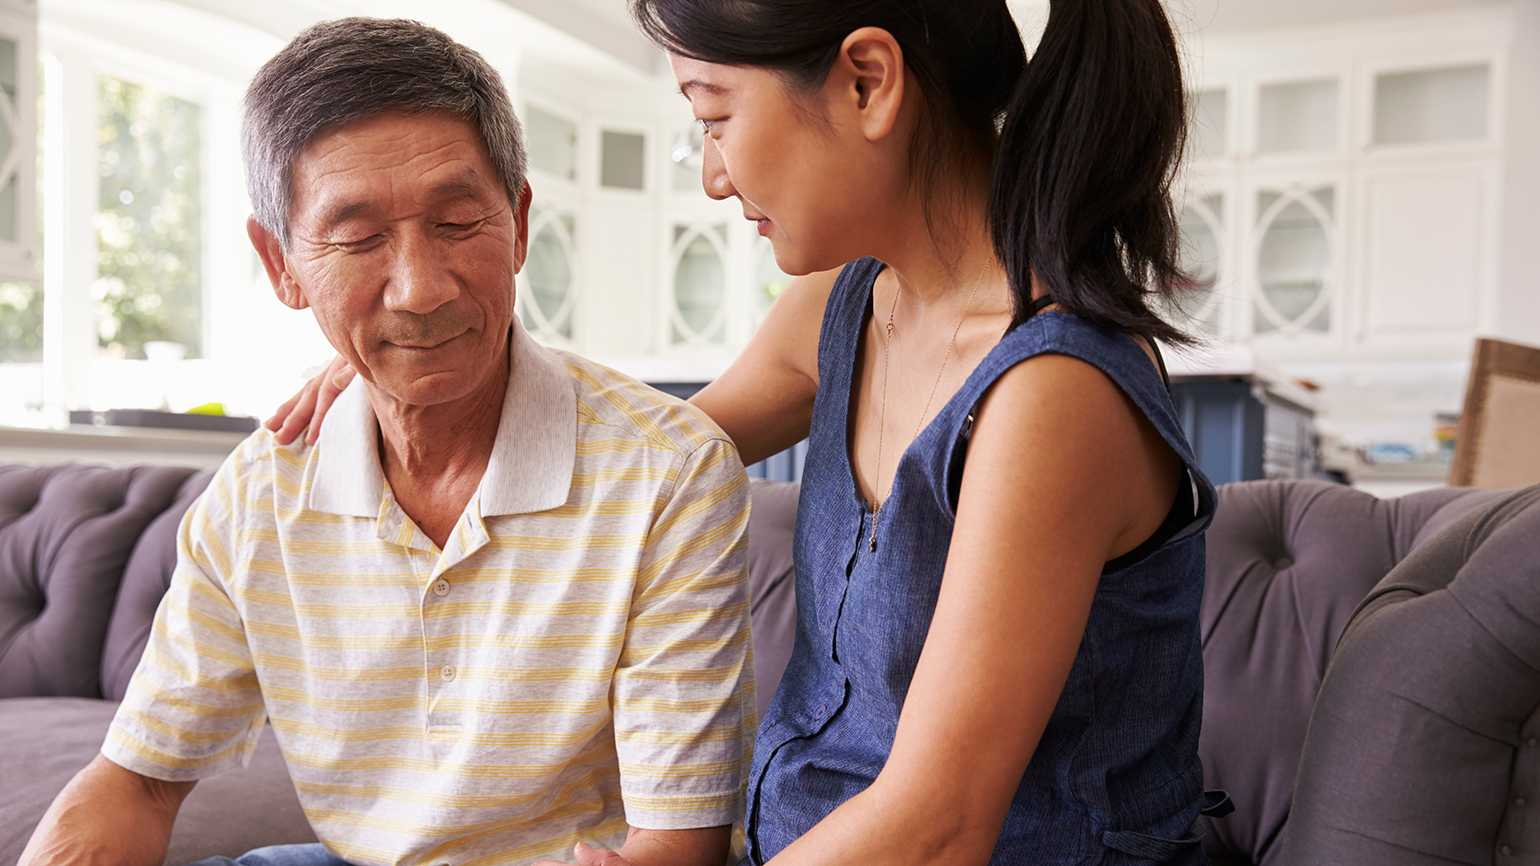 An adult daughter comforts her father who is dealing with dementia